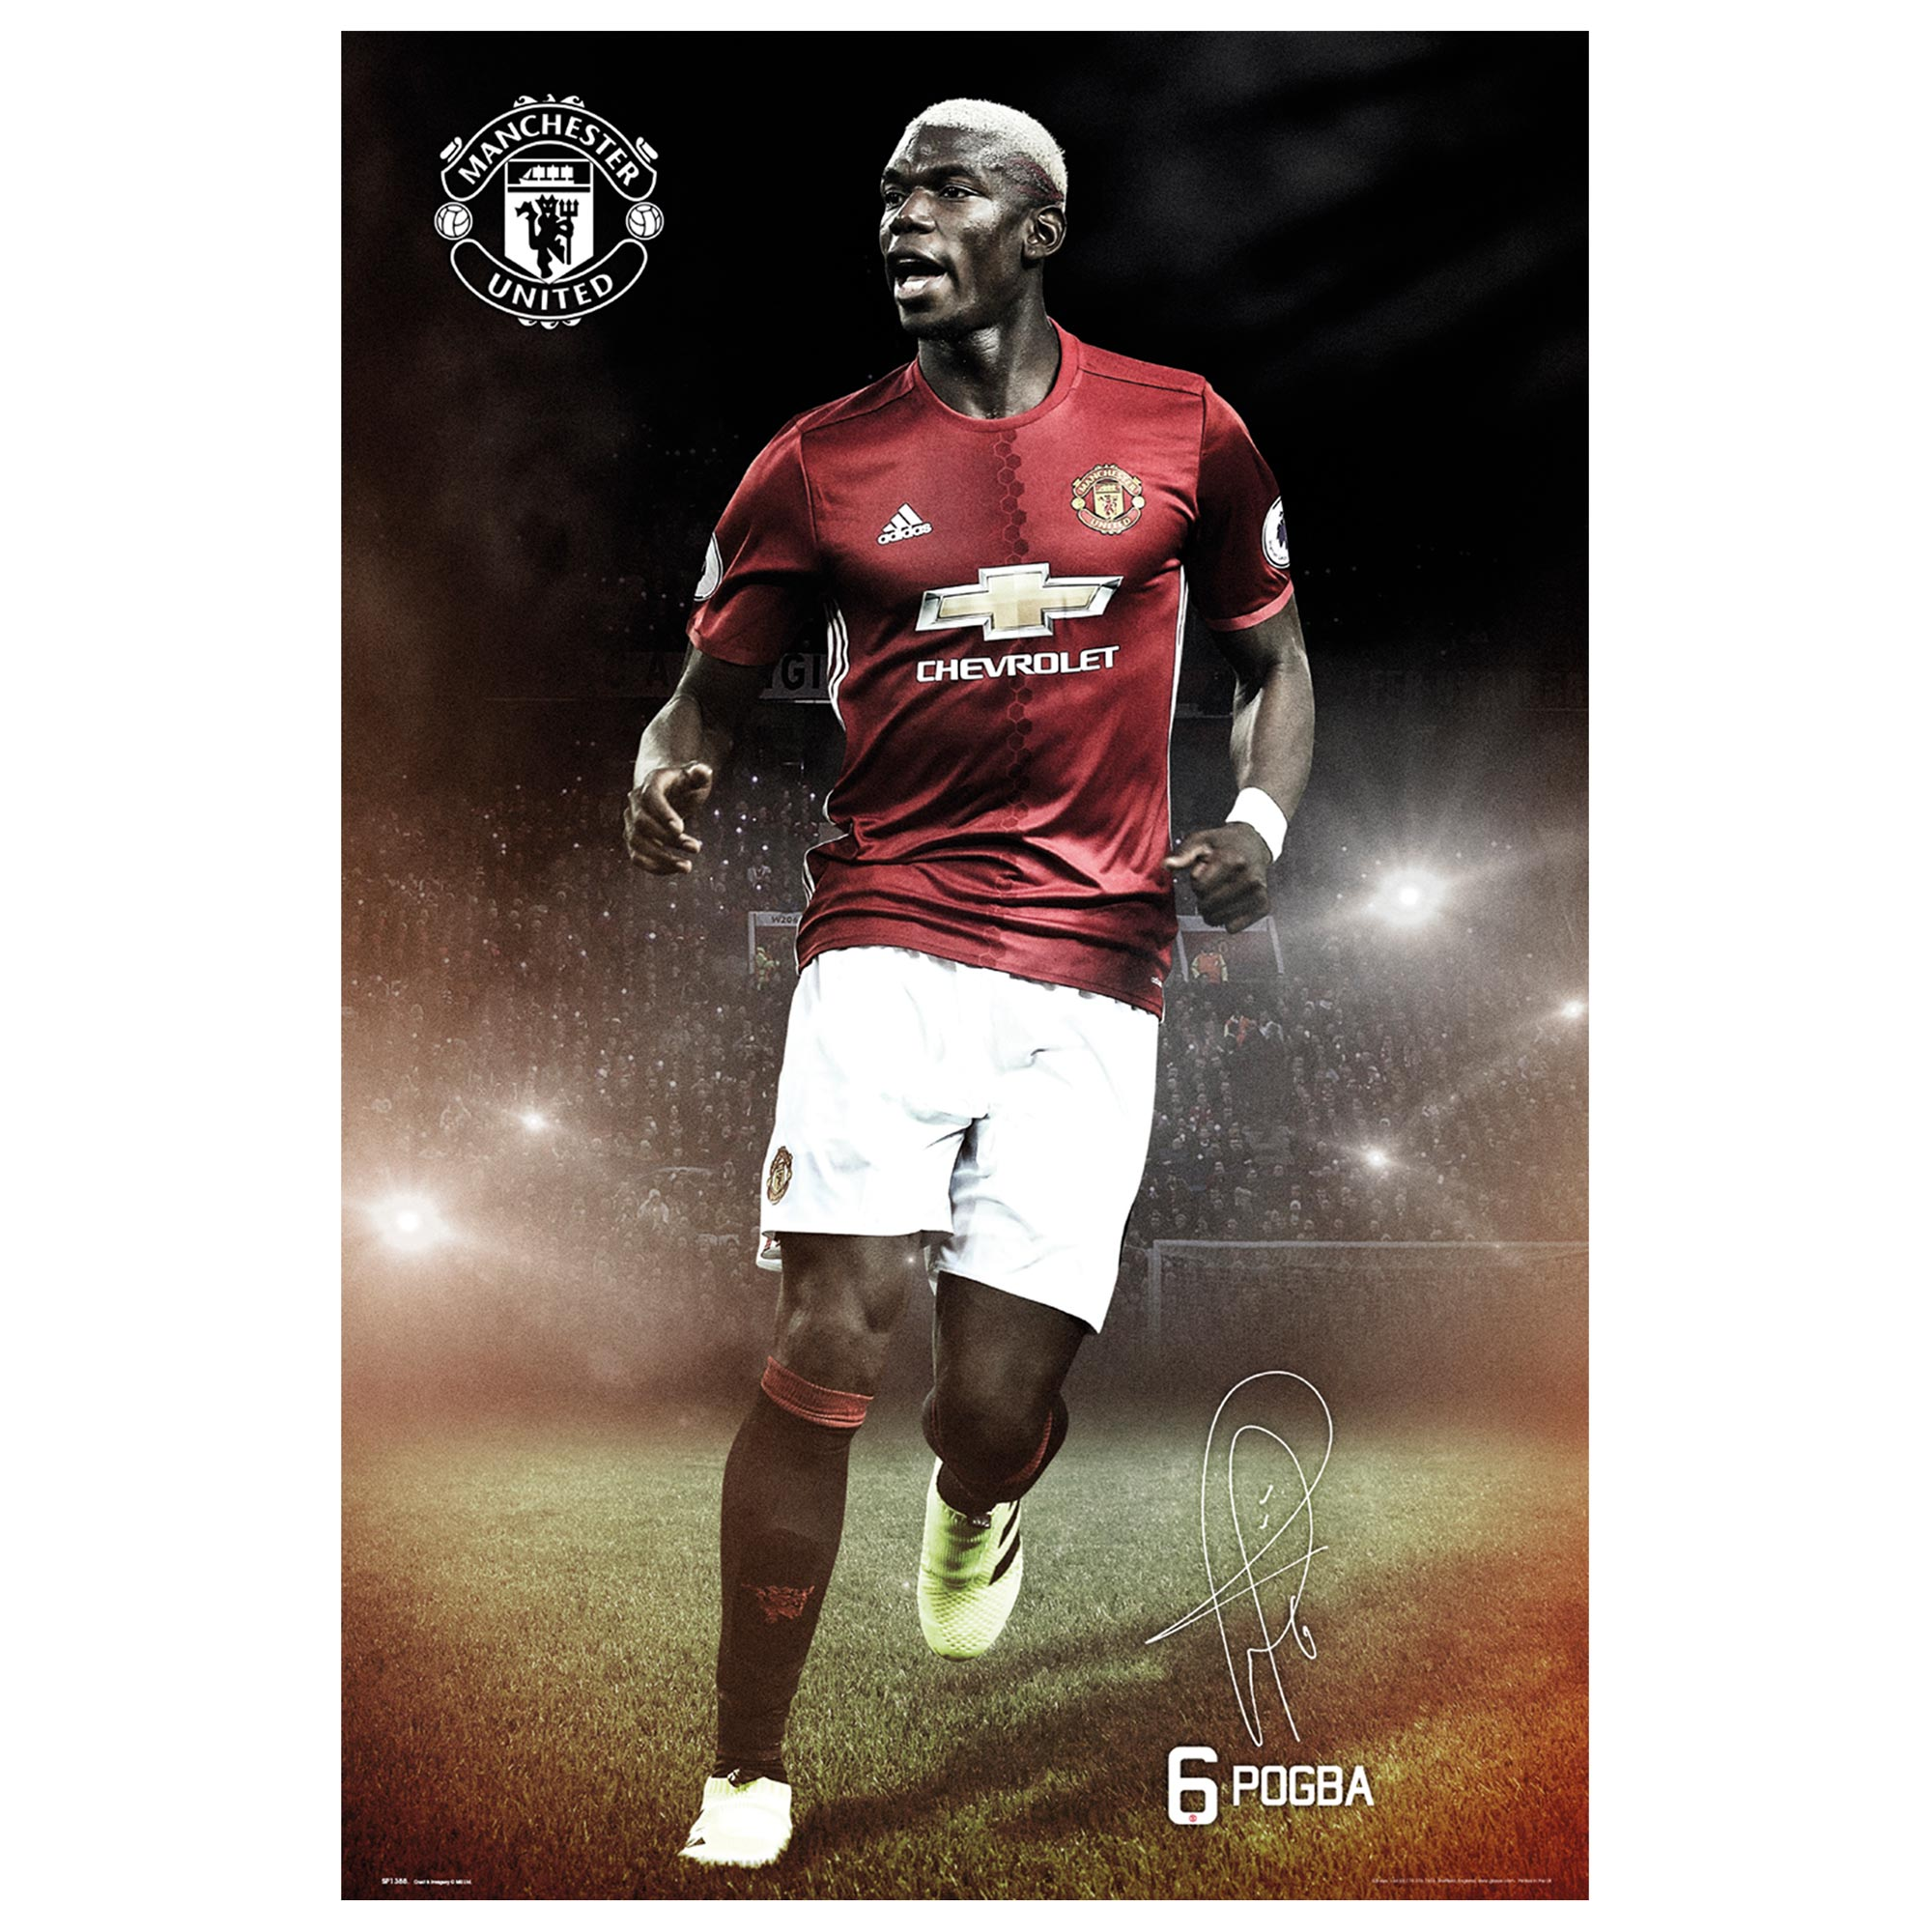 Manchester United 16-17 Pogba Poster - 61 x 92cm